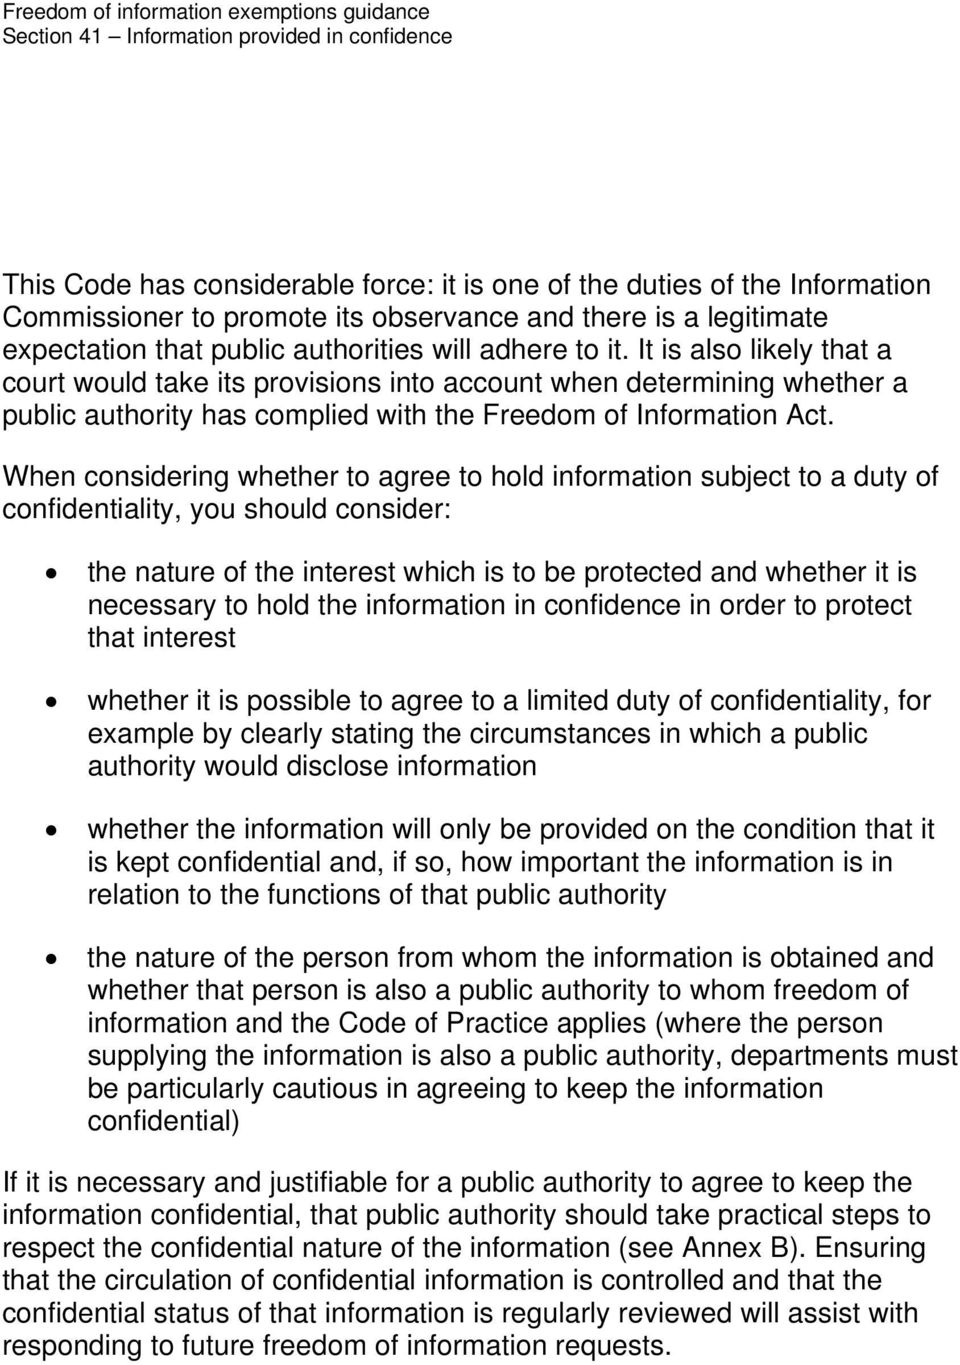 When considering whether to agree to hold information subject to a duty of confidentiality, you should consider: the nature of the interest which is to be protected and whether it is necessary to